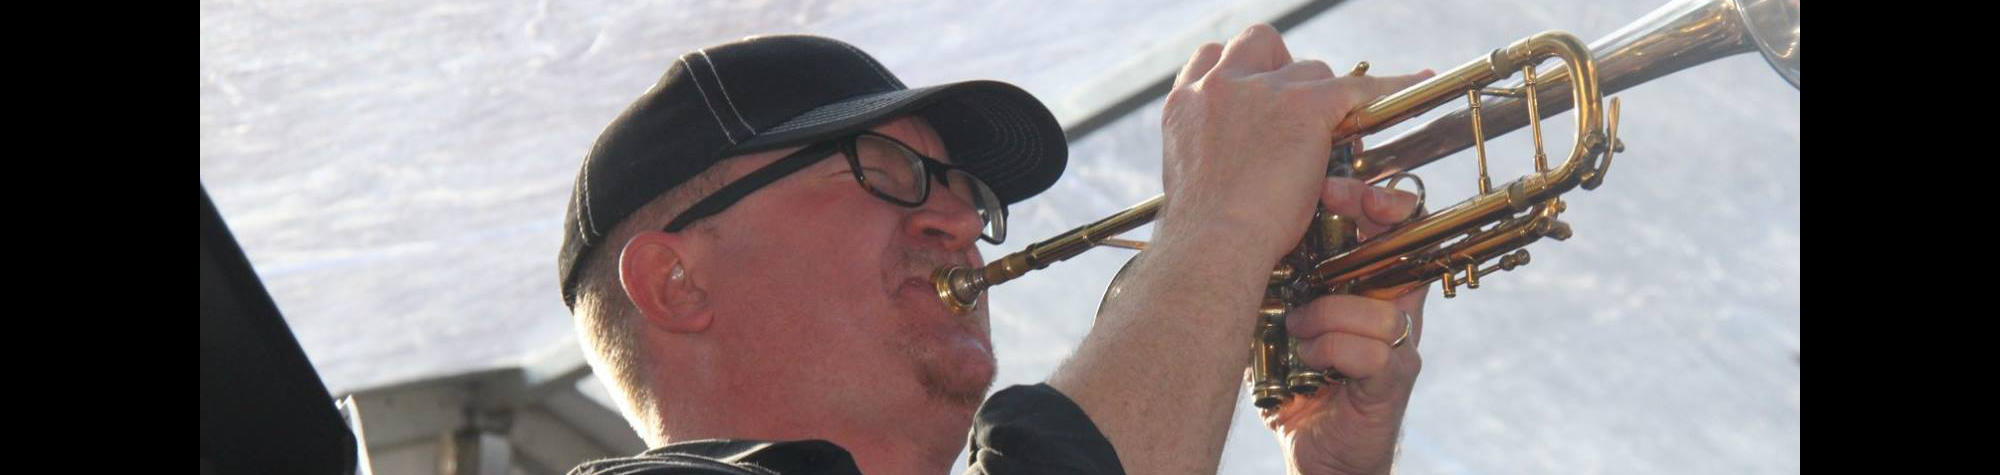 Simon Sweeney Trumpet Interview – The Other Side of the Bell #85